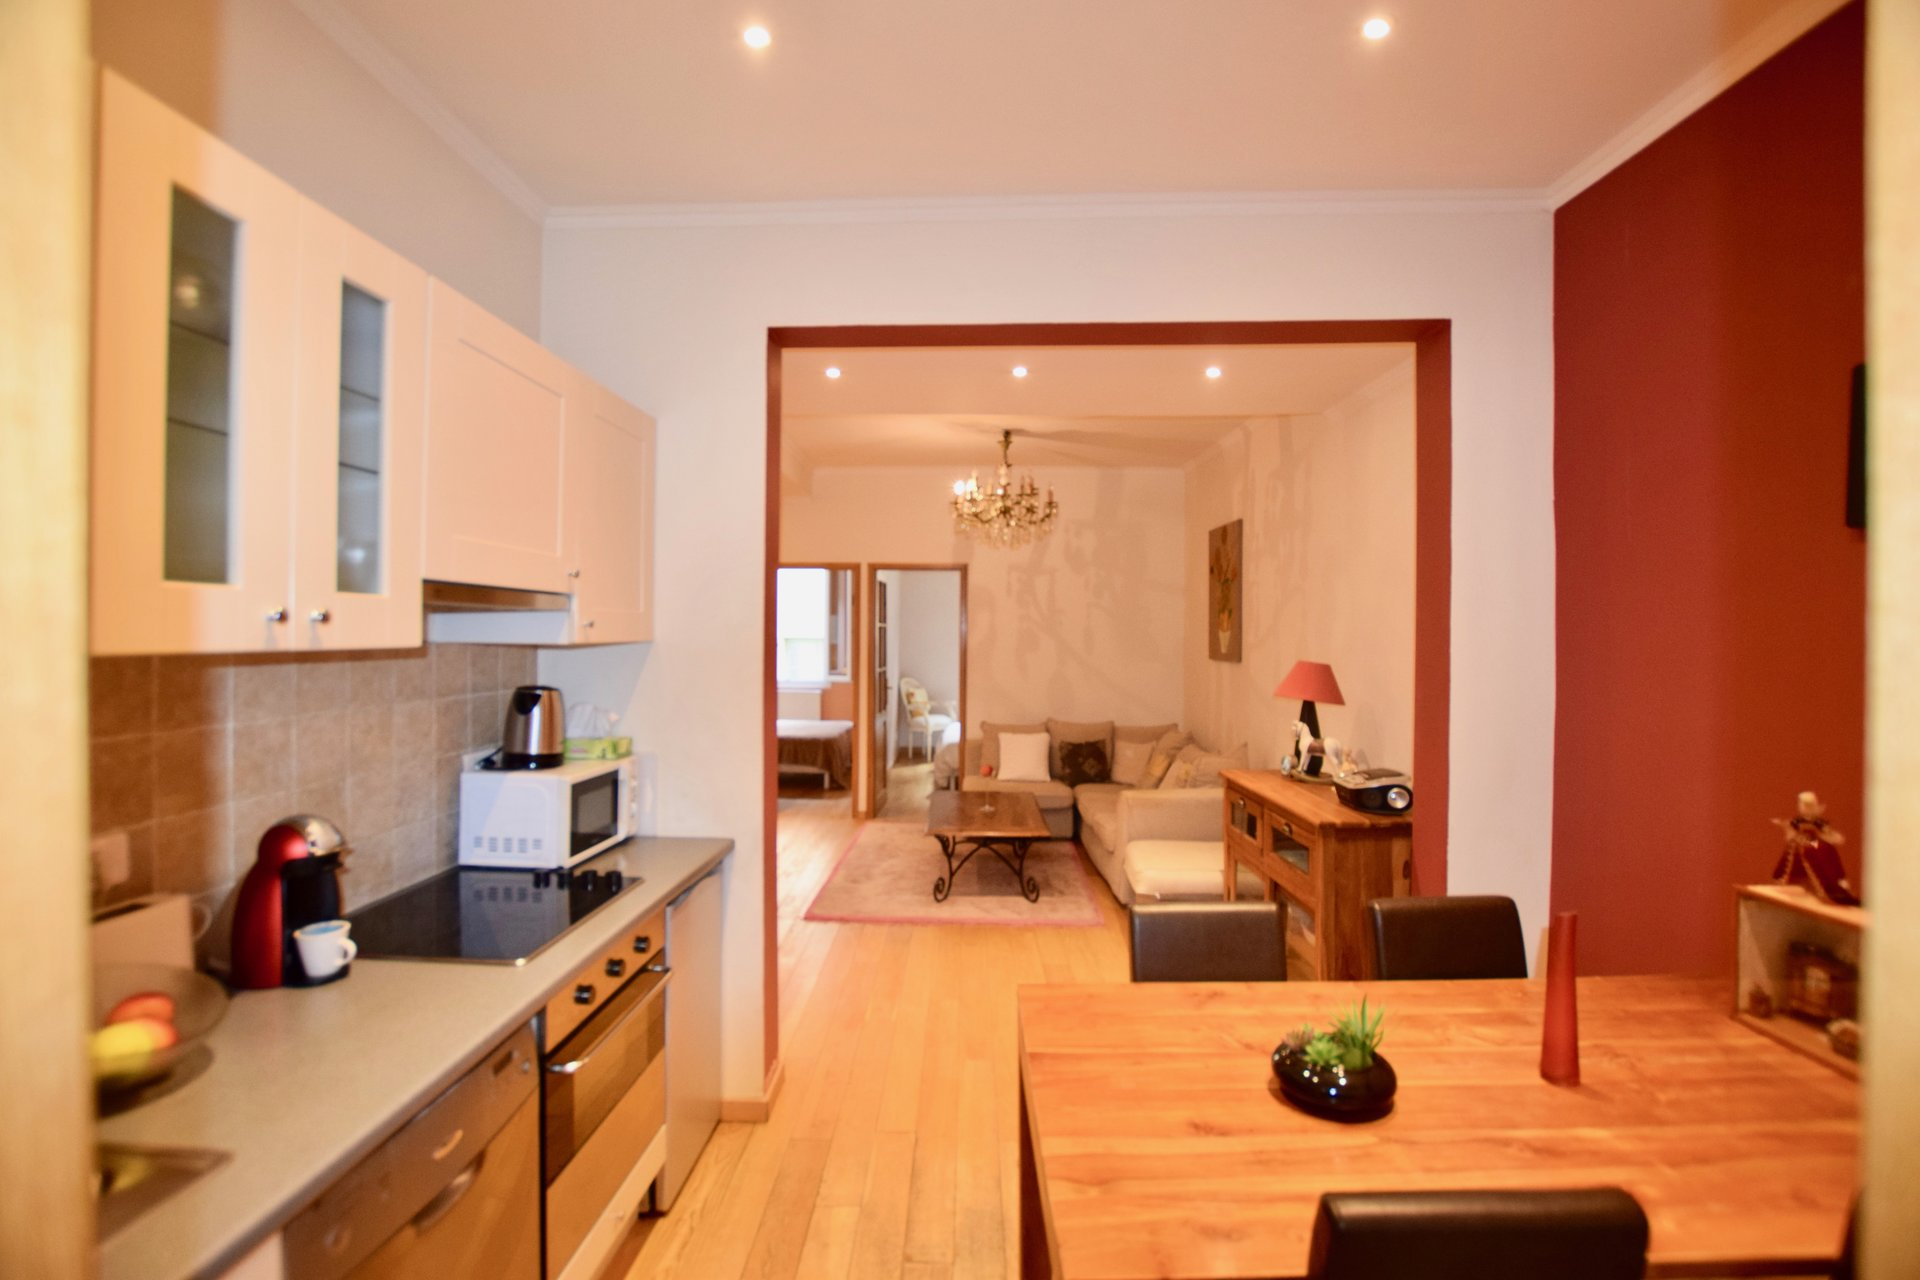 For sale 2 bedroom apartment in the old town of Nice